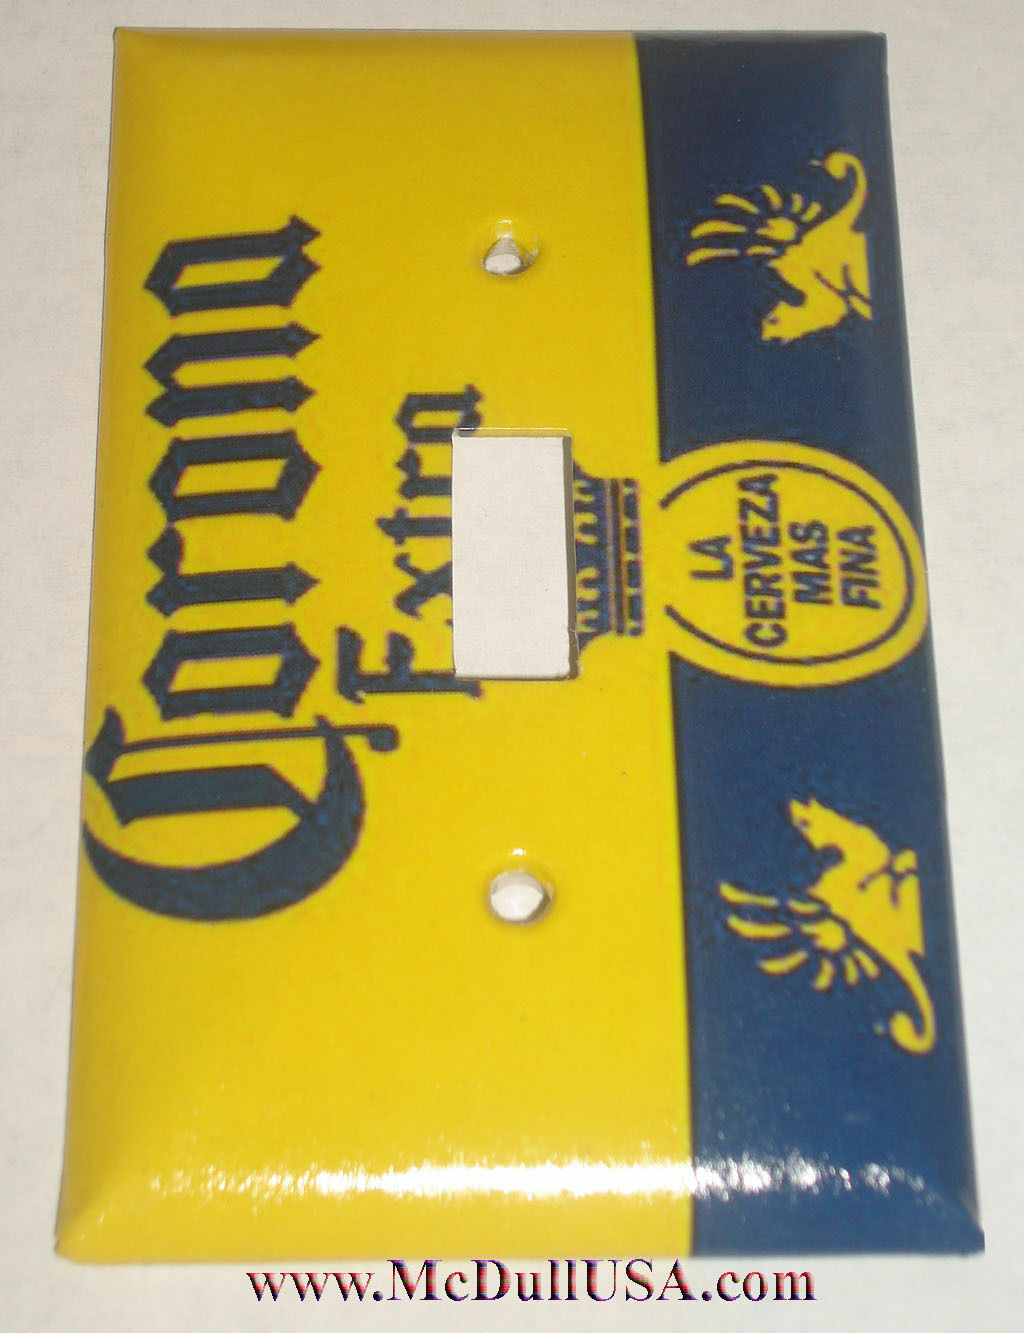 Corona Extra La Cerveza Light Switch Power Outlet wall Cover Plate Decor